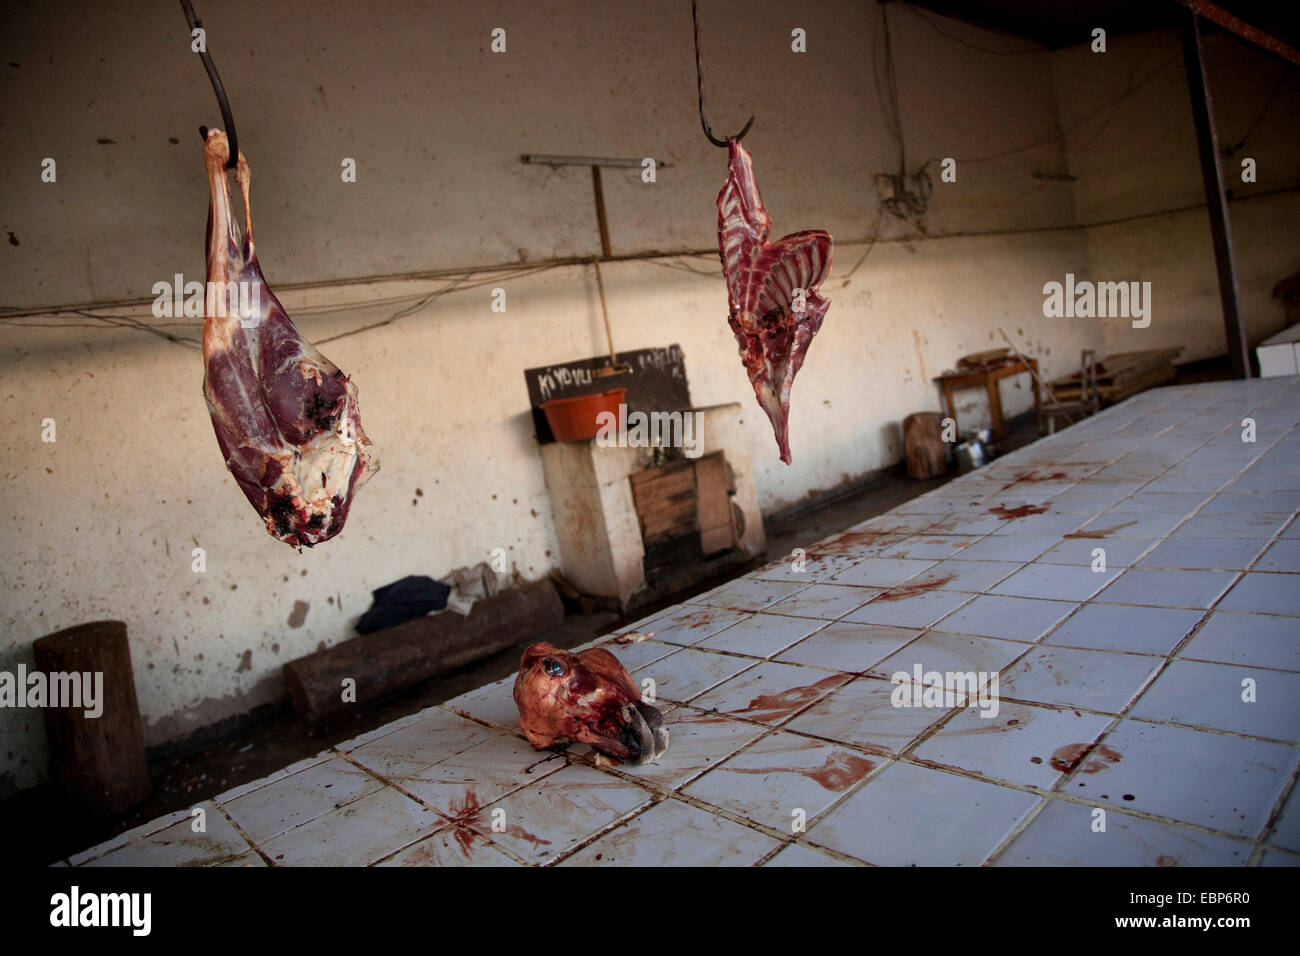 Fresh goat meat is being offered on public market in bad hiegene conditions, dried blood on tiled surface, Rwanda, - Stock Image